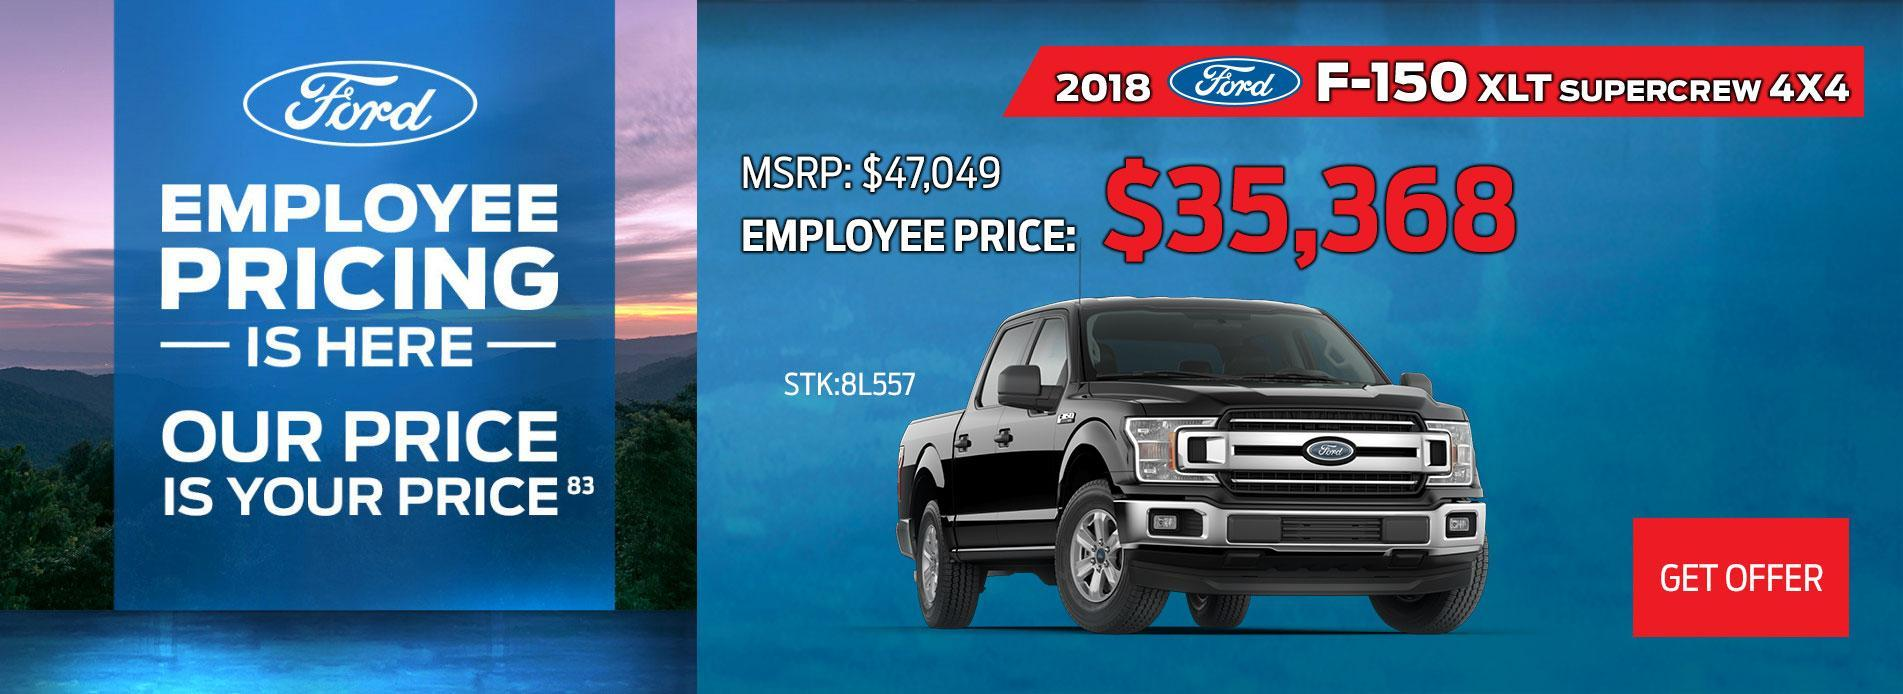 Ford Employee Pricing 2018